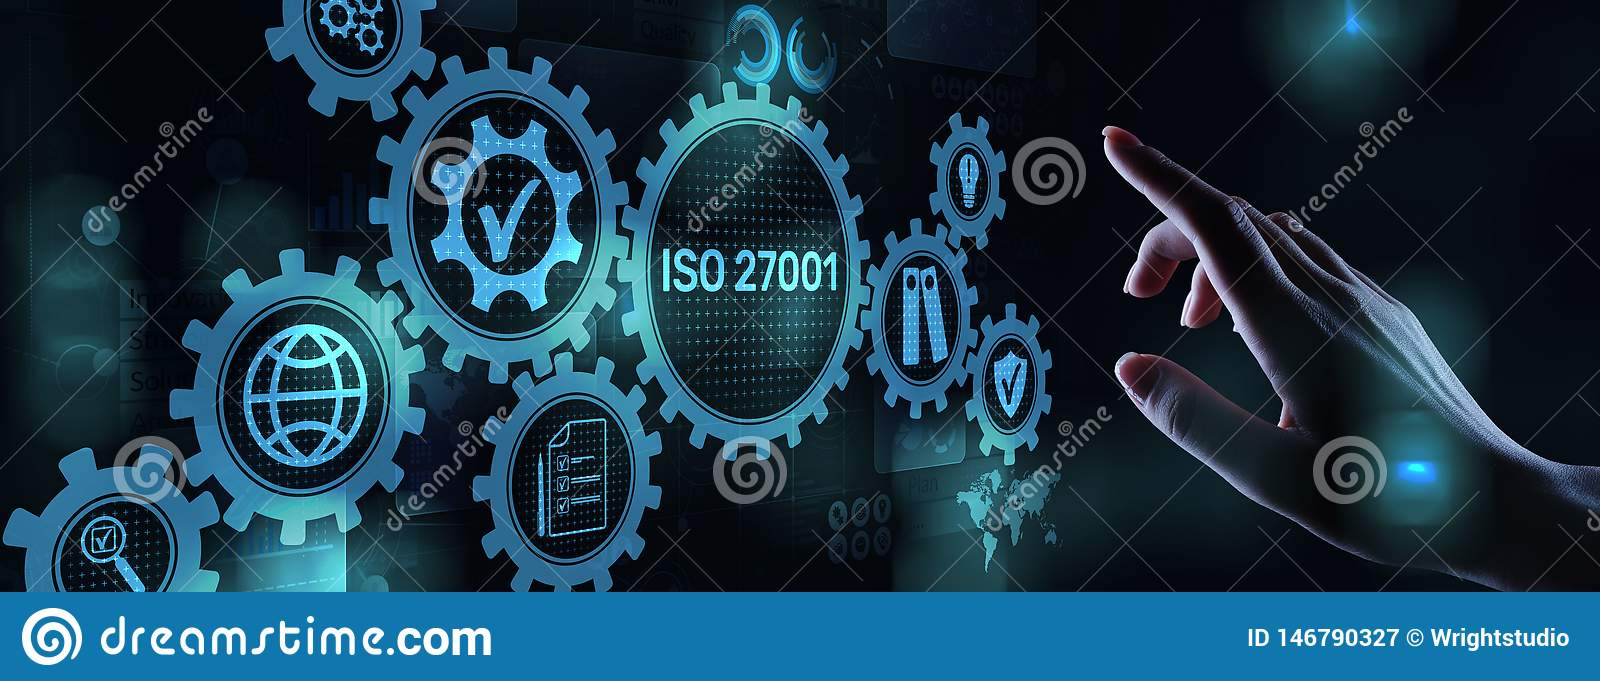 Iso 27001 Standard Standardisation Certification Customer guarantee and satisfaction Business concept on virtual screen.